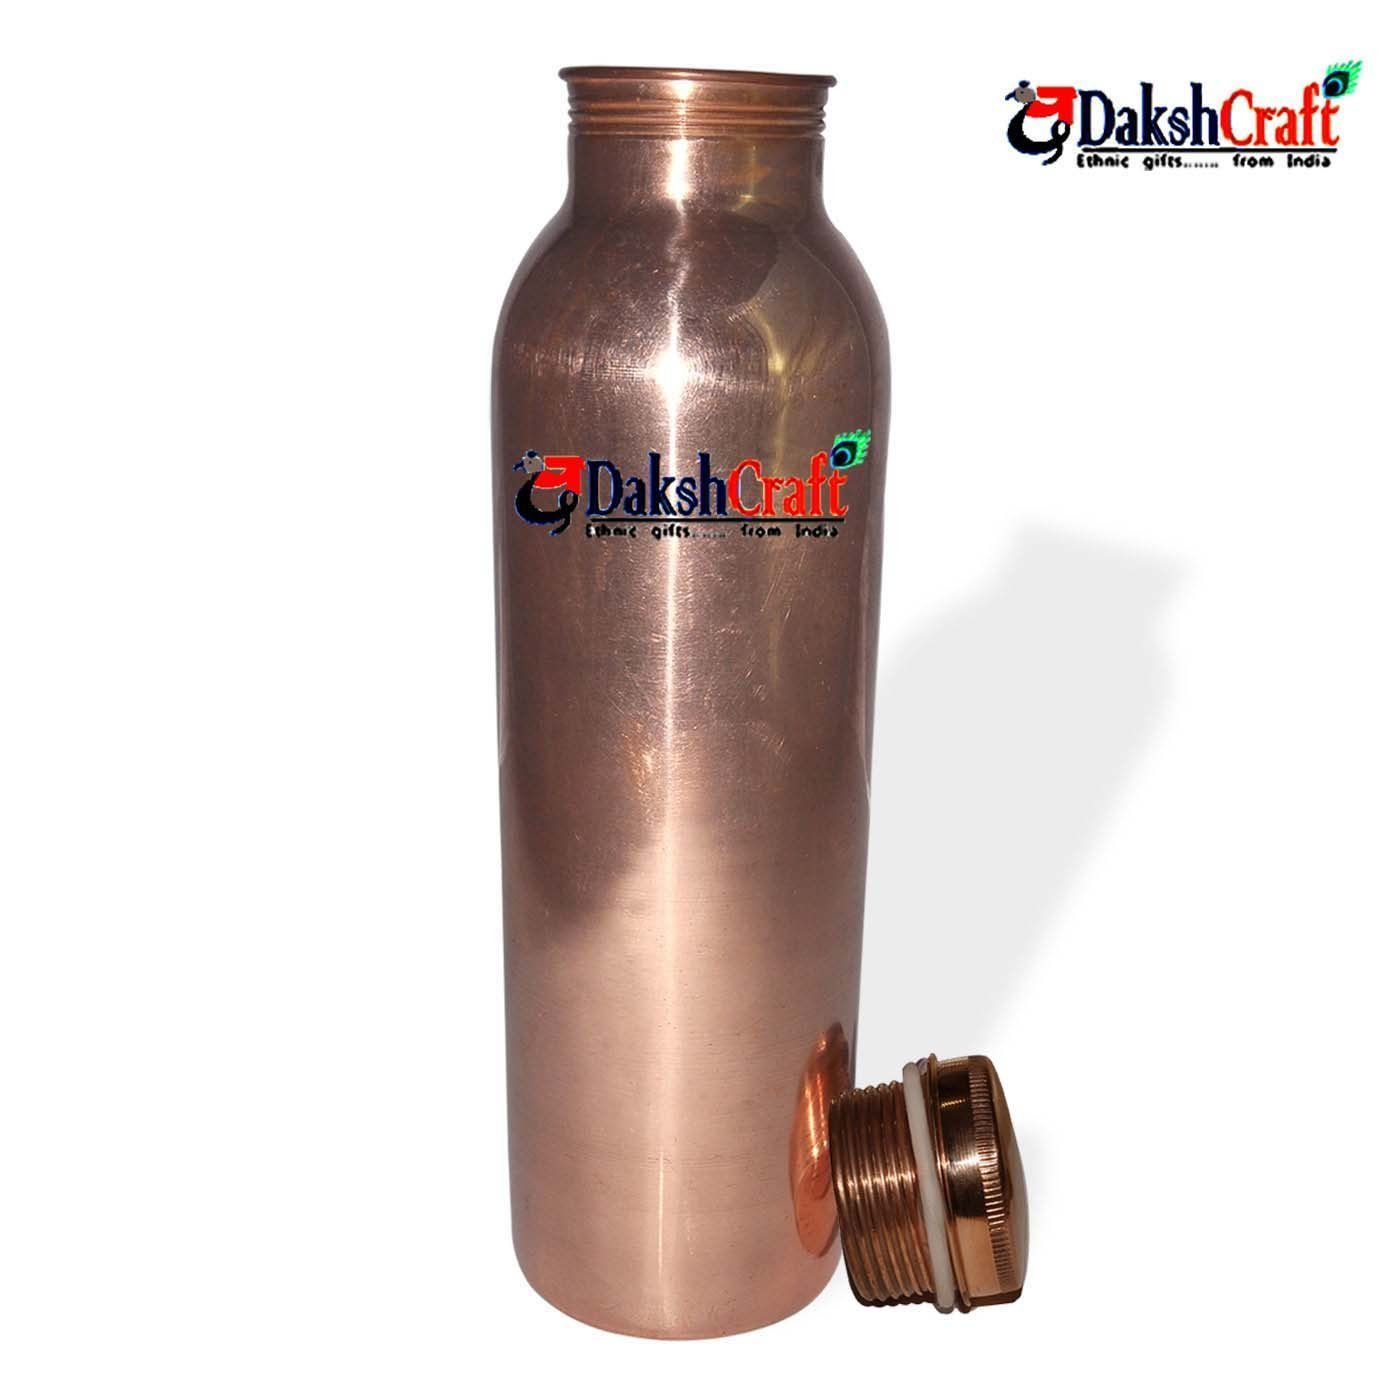 DakshCraft Pure Copper Joint Free Plain Bottle - 1000 ml / 33.81 oz pr pcs with Rubber Washer - A Leak Proof Ayurvedic Pure Copper Bottle